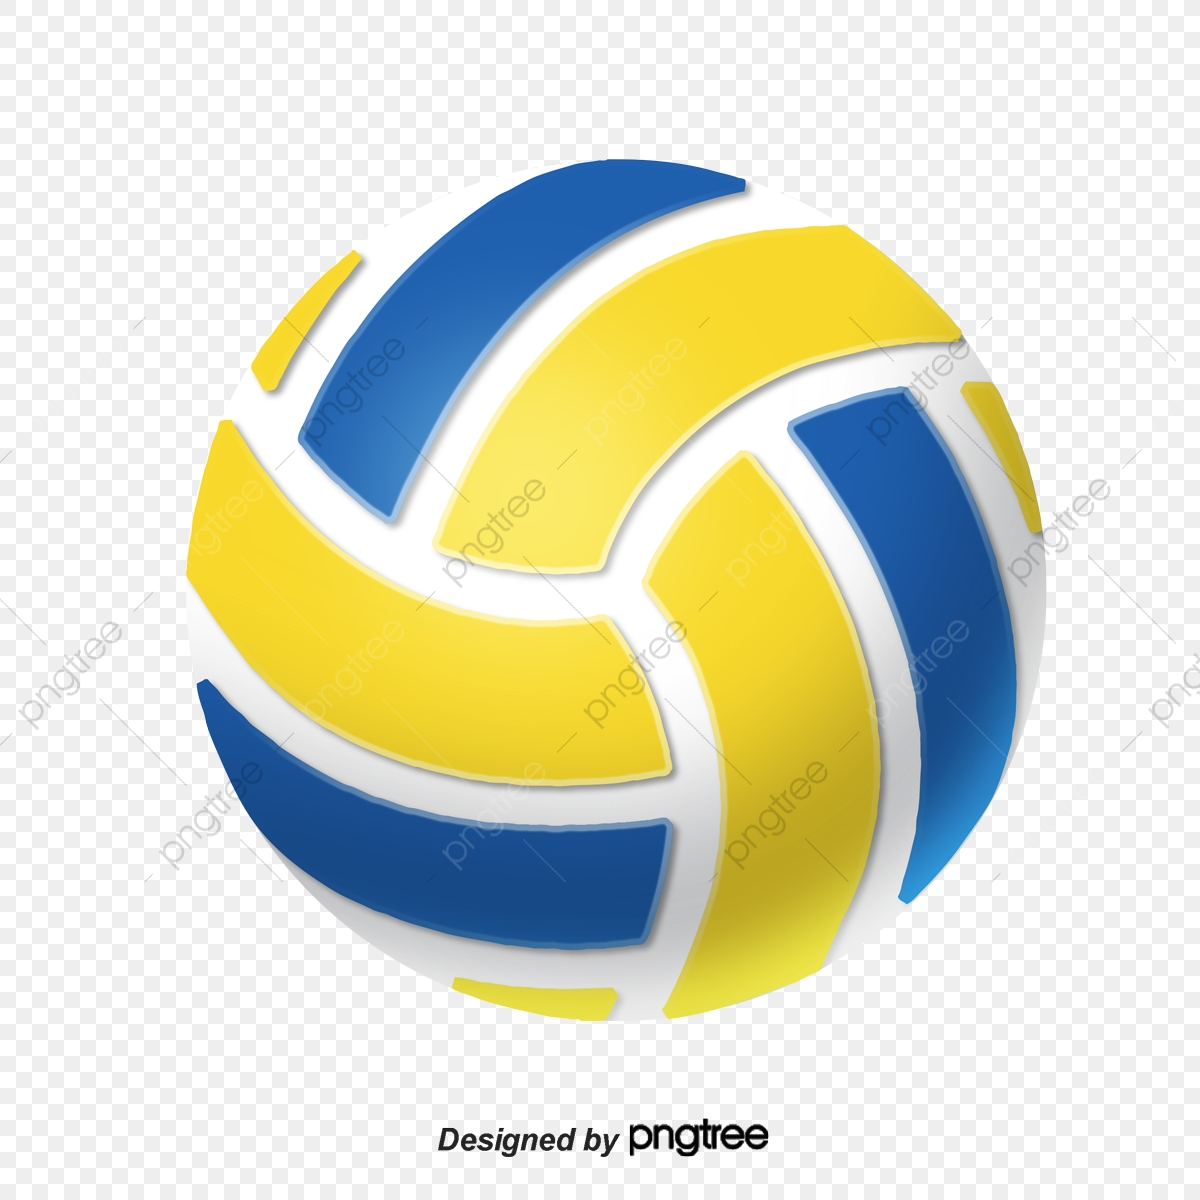 Cartoon Realistic Volleyball Sports Realism Cartoon Png Transparent Clipart Image And Psd File For Free Download